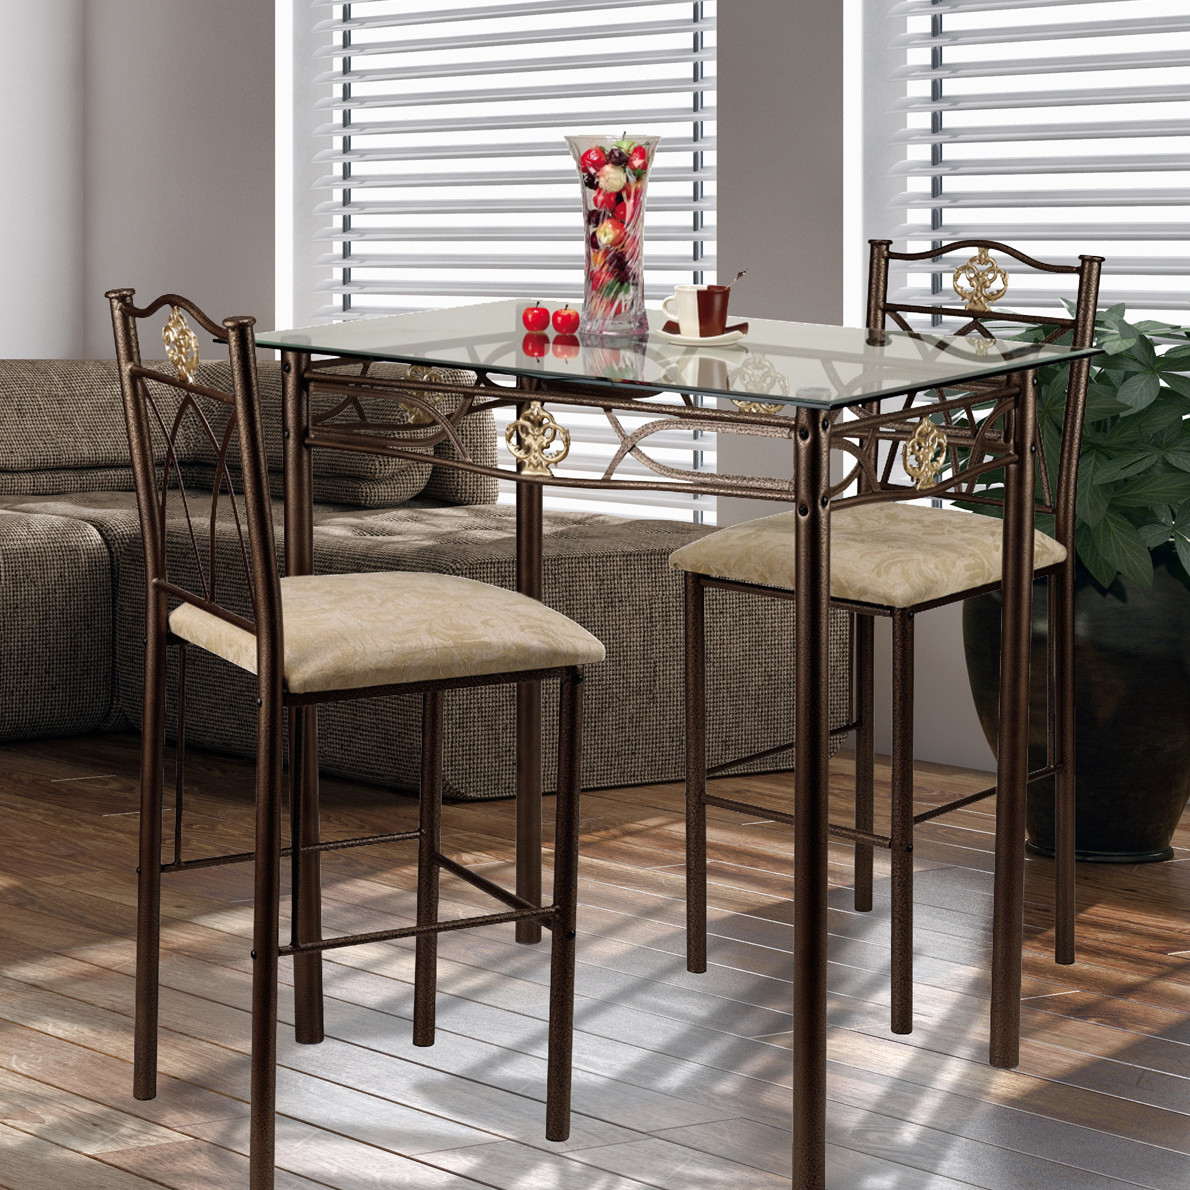 From Classic And Simple To Modern Style Of Small Pub Table Pertaining To Newest Andreniki Bar Height Pedestal Dining Tables (View 10 of 15)